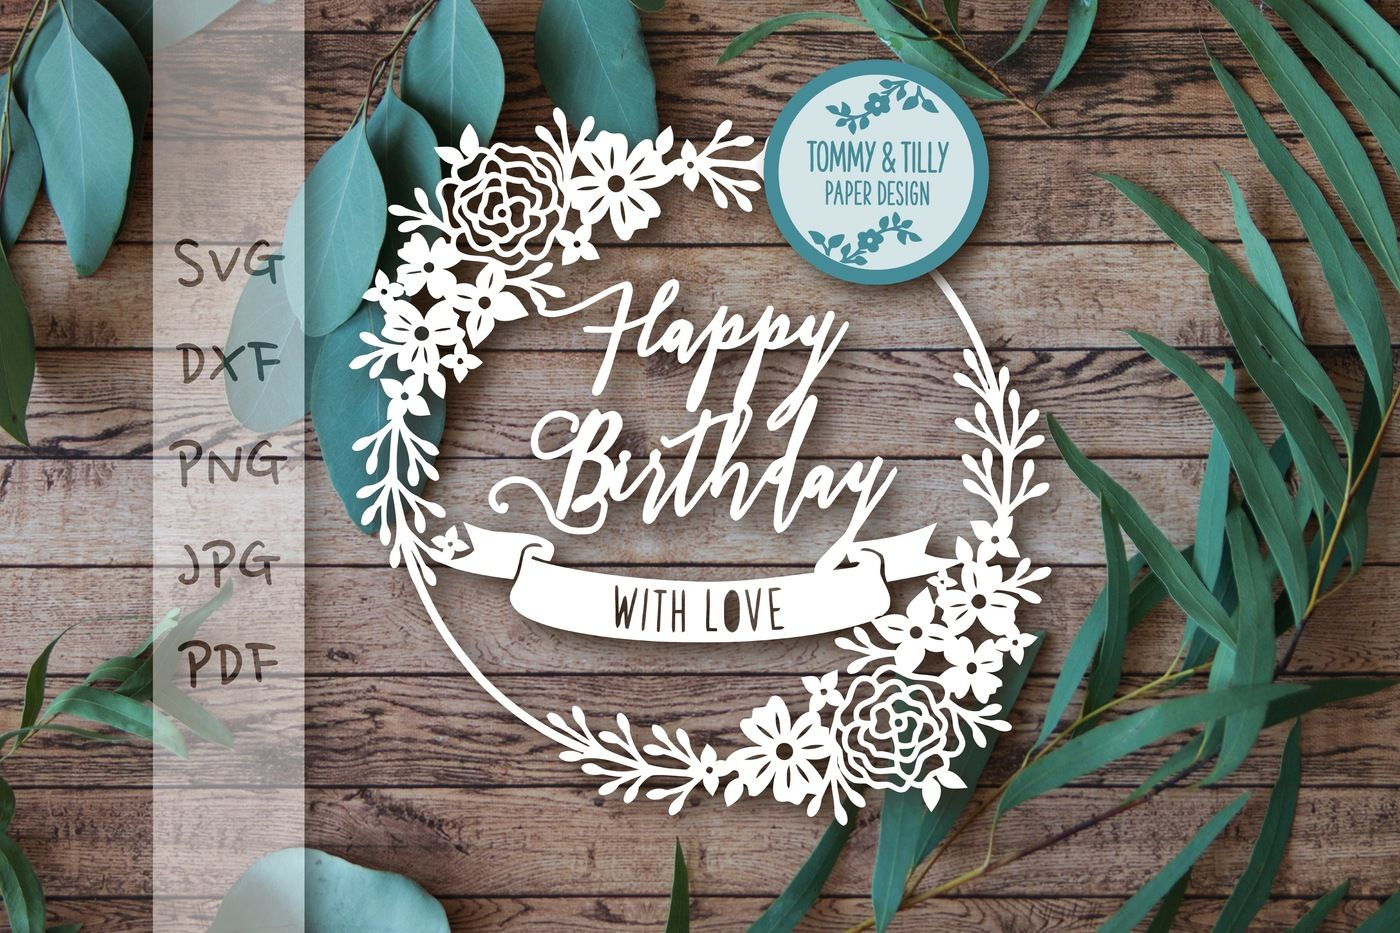 Happy Birthday Cutting File Svg Dxf Png Pdf Jpg By Tommy And Tilly